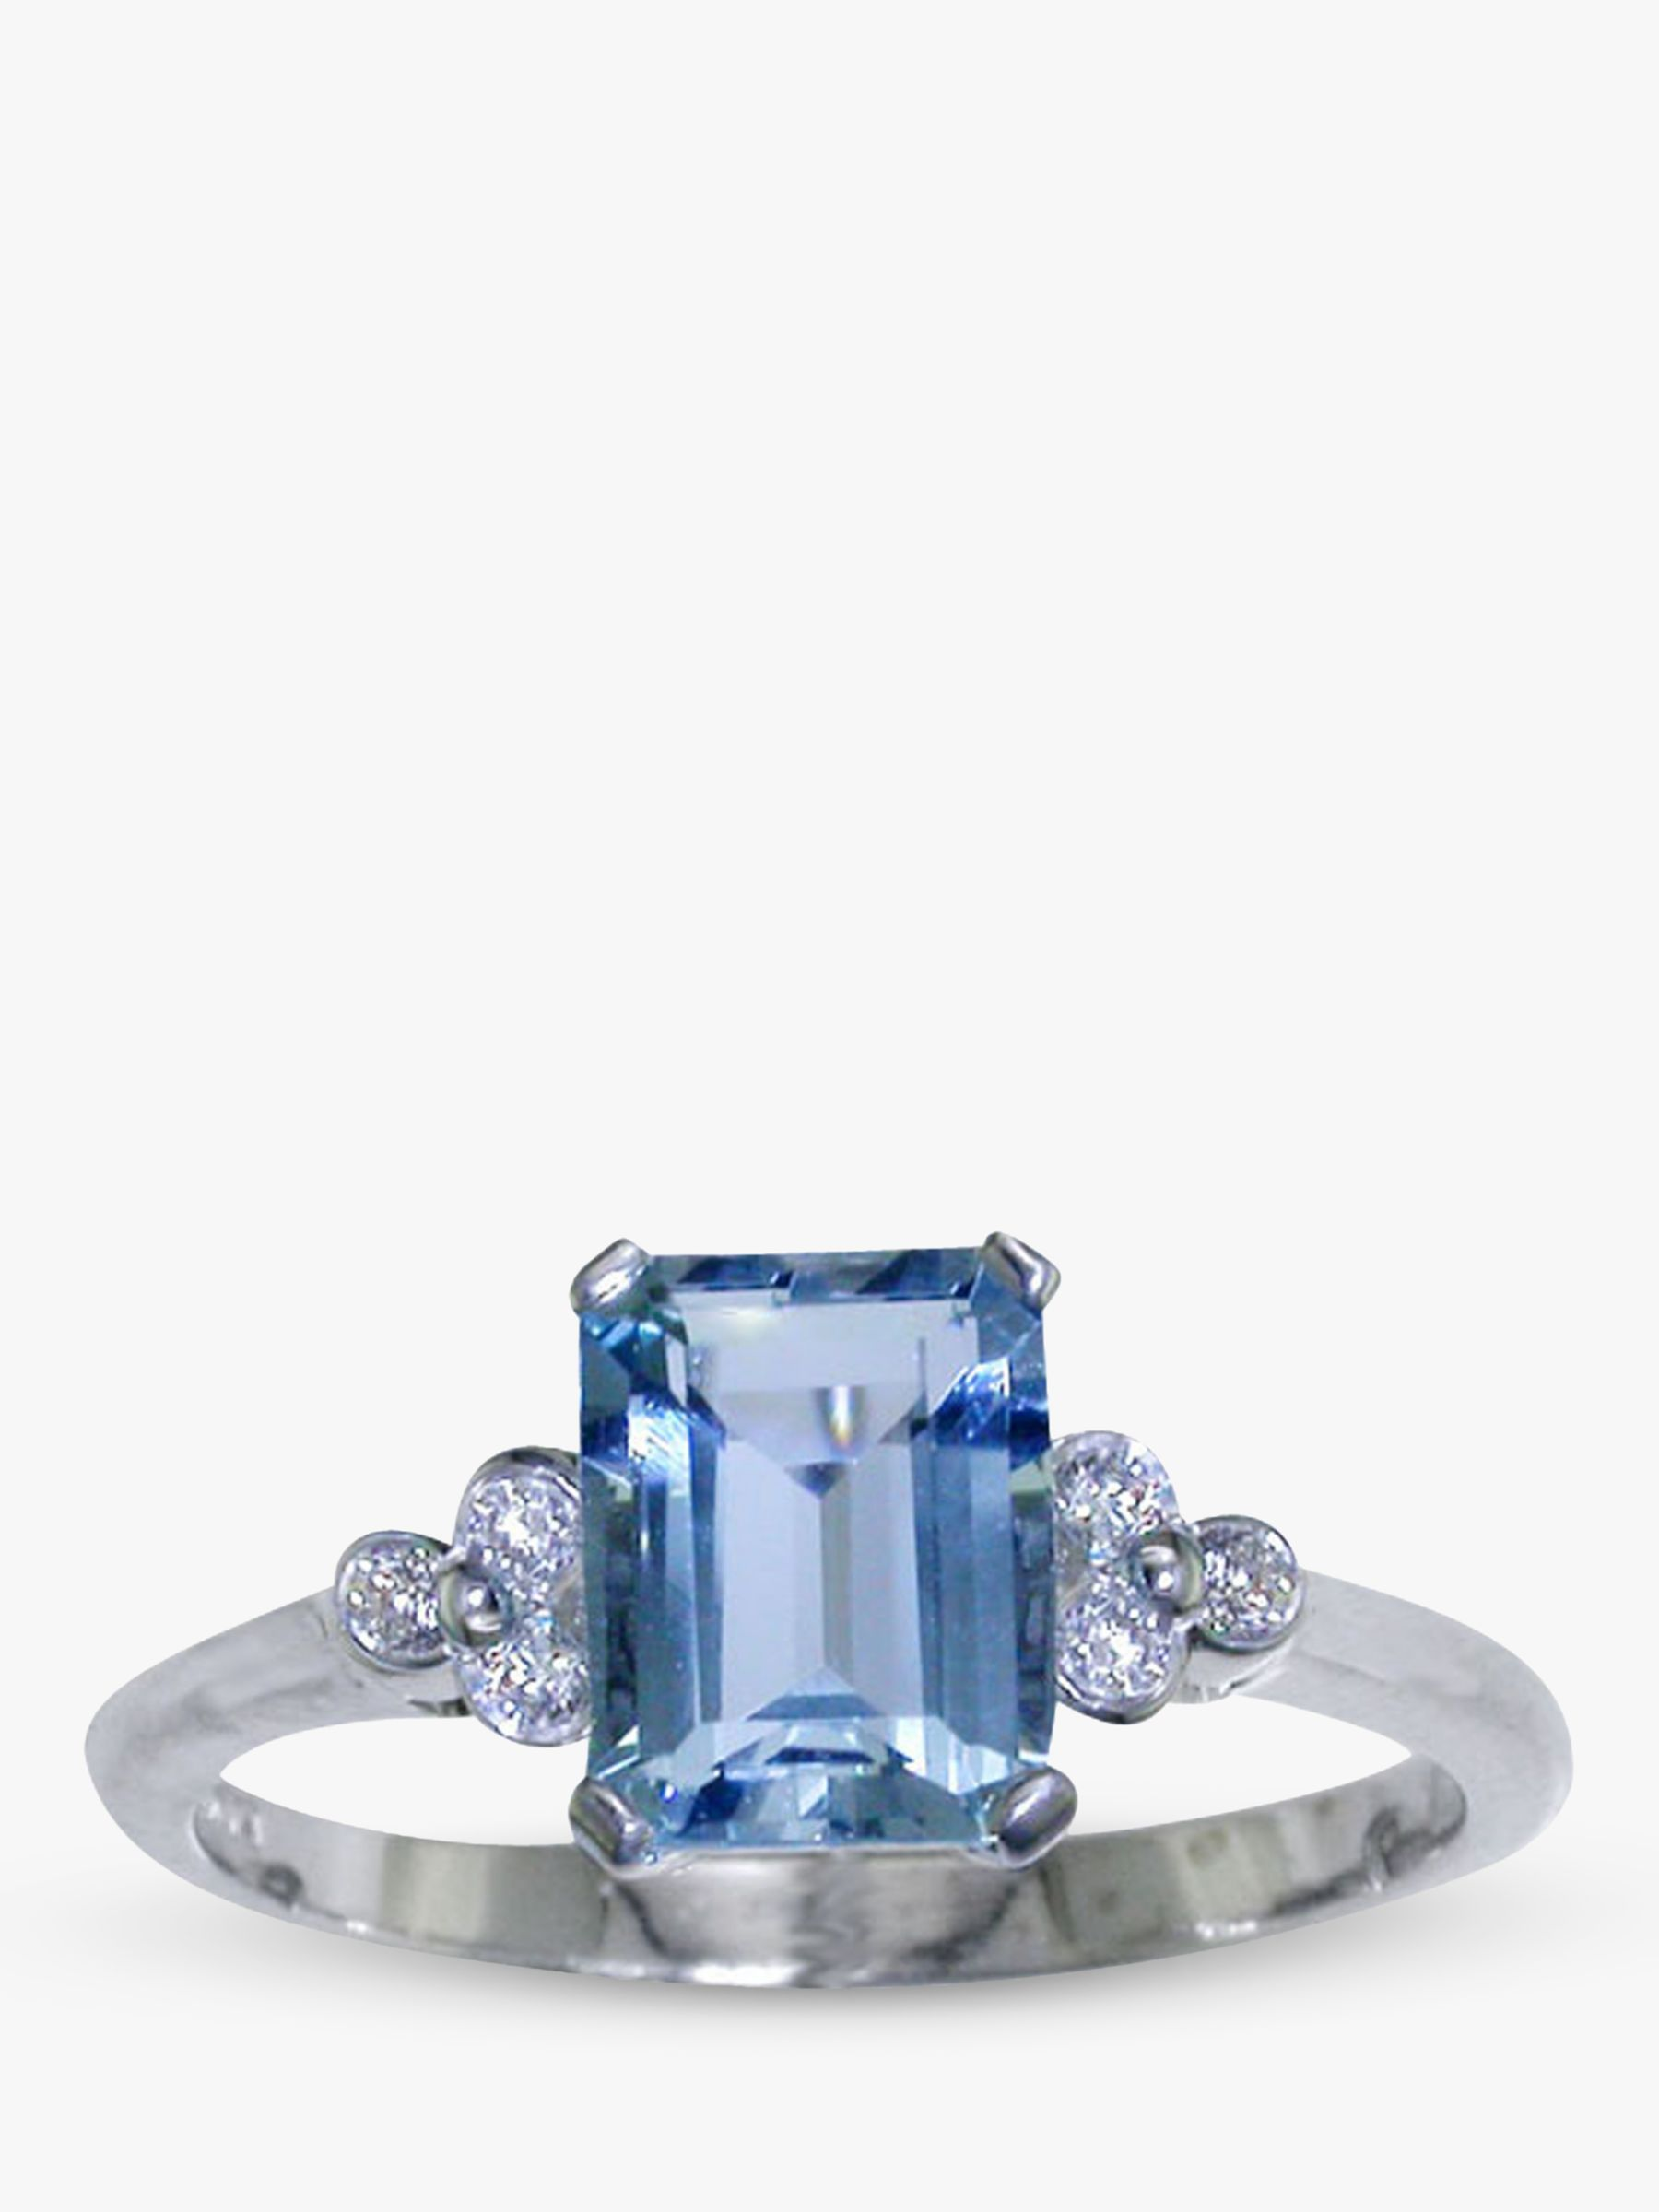 lewis ewa aquamarine diamond rings at john ring wedding white fairy gold